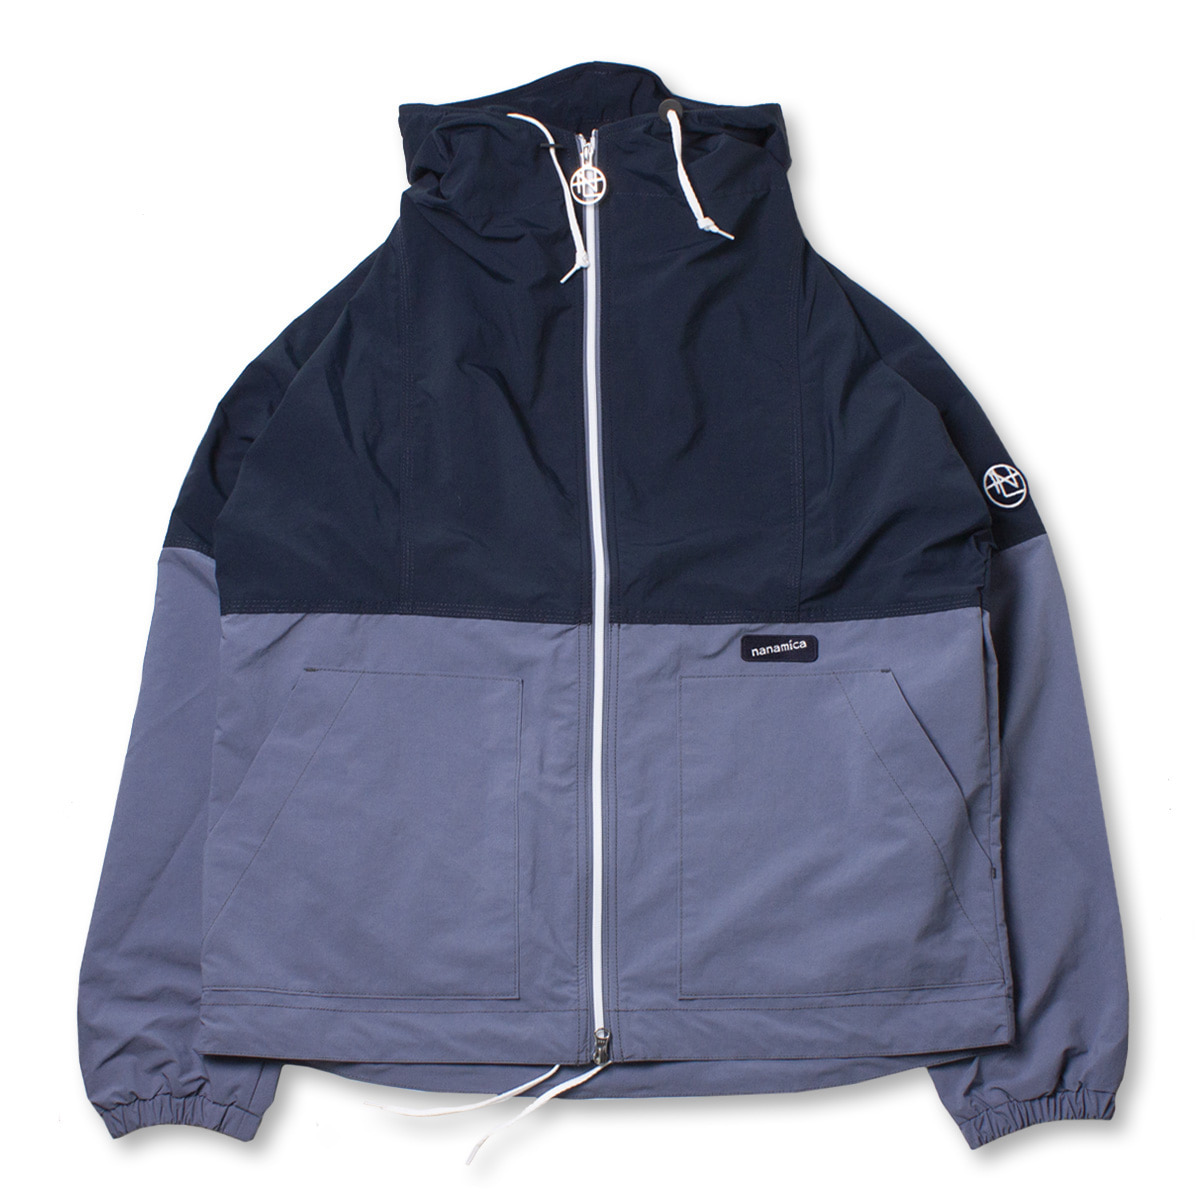 [NANAMICA] NANAMICA CRUSIER JACKET 'NAVY'